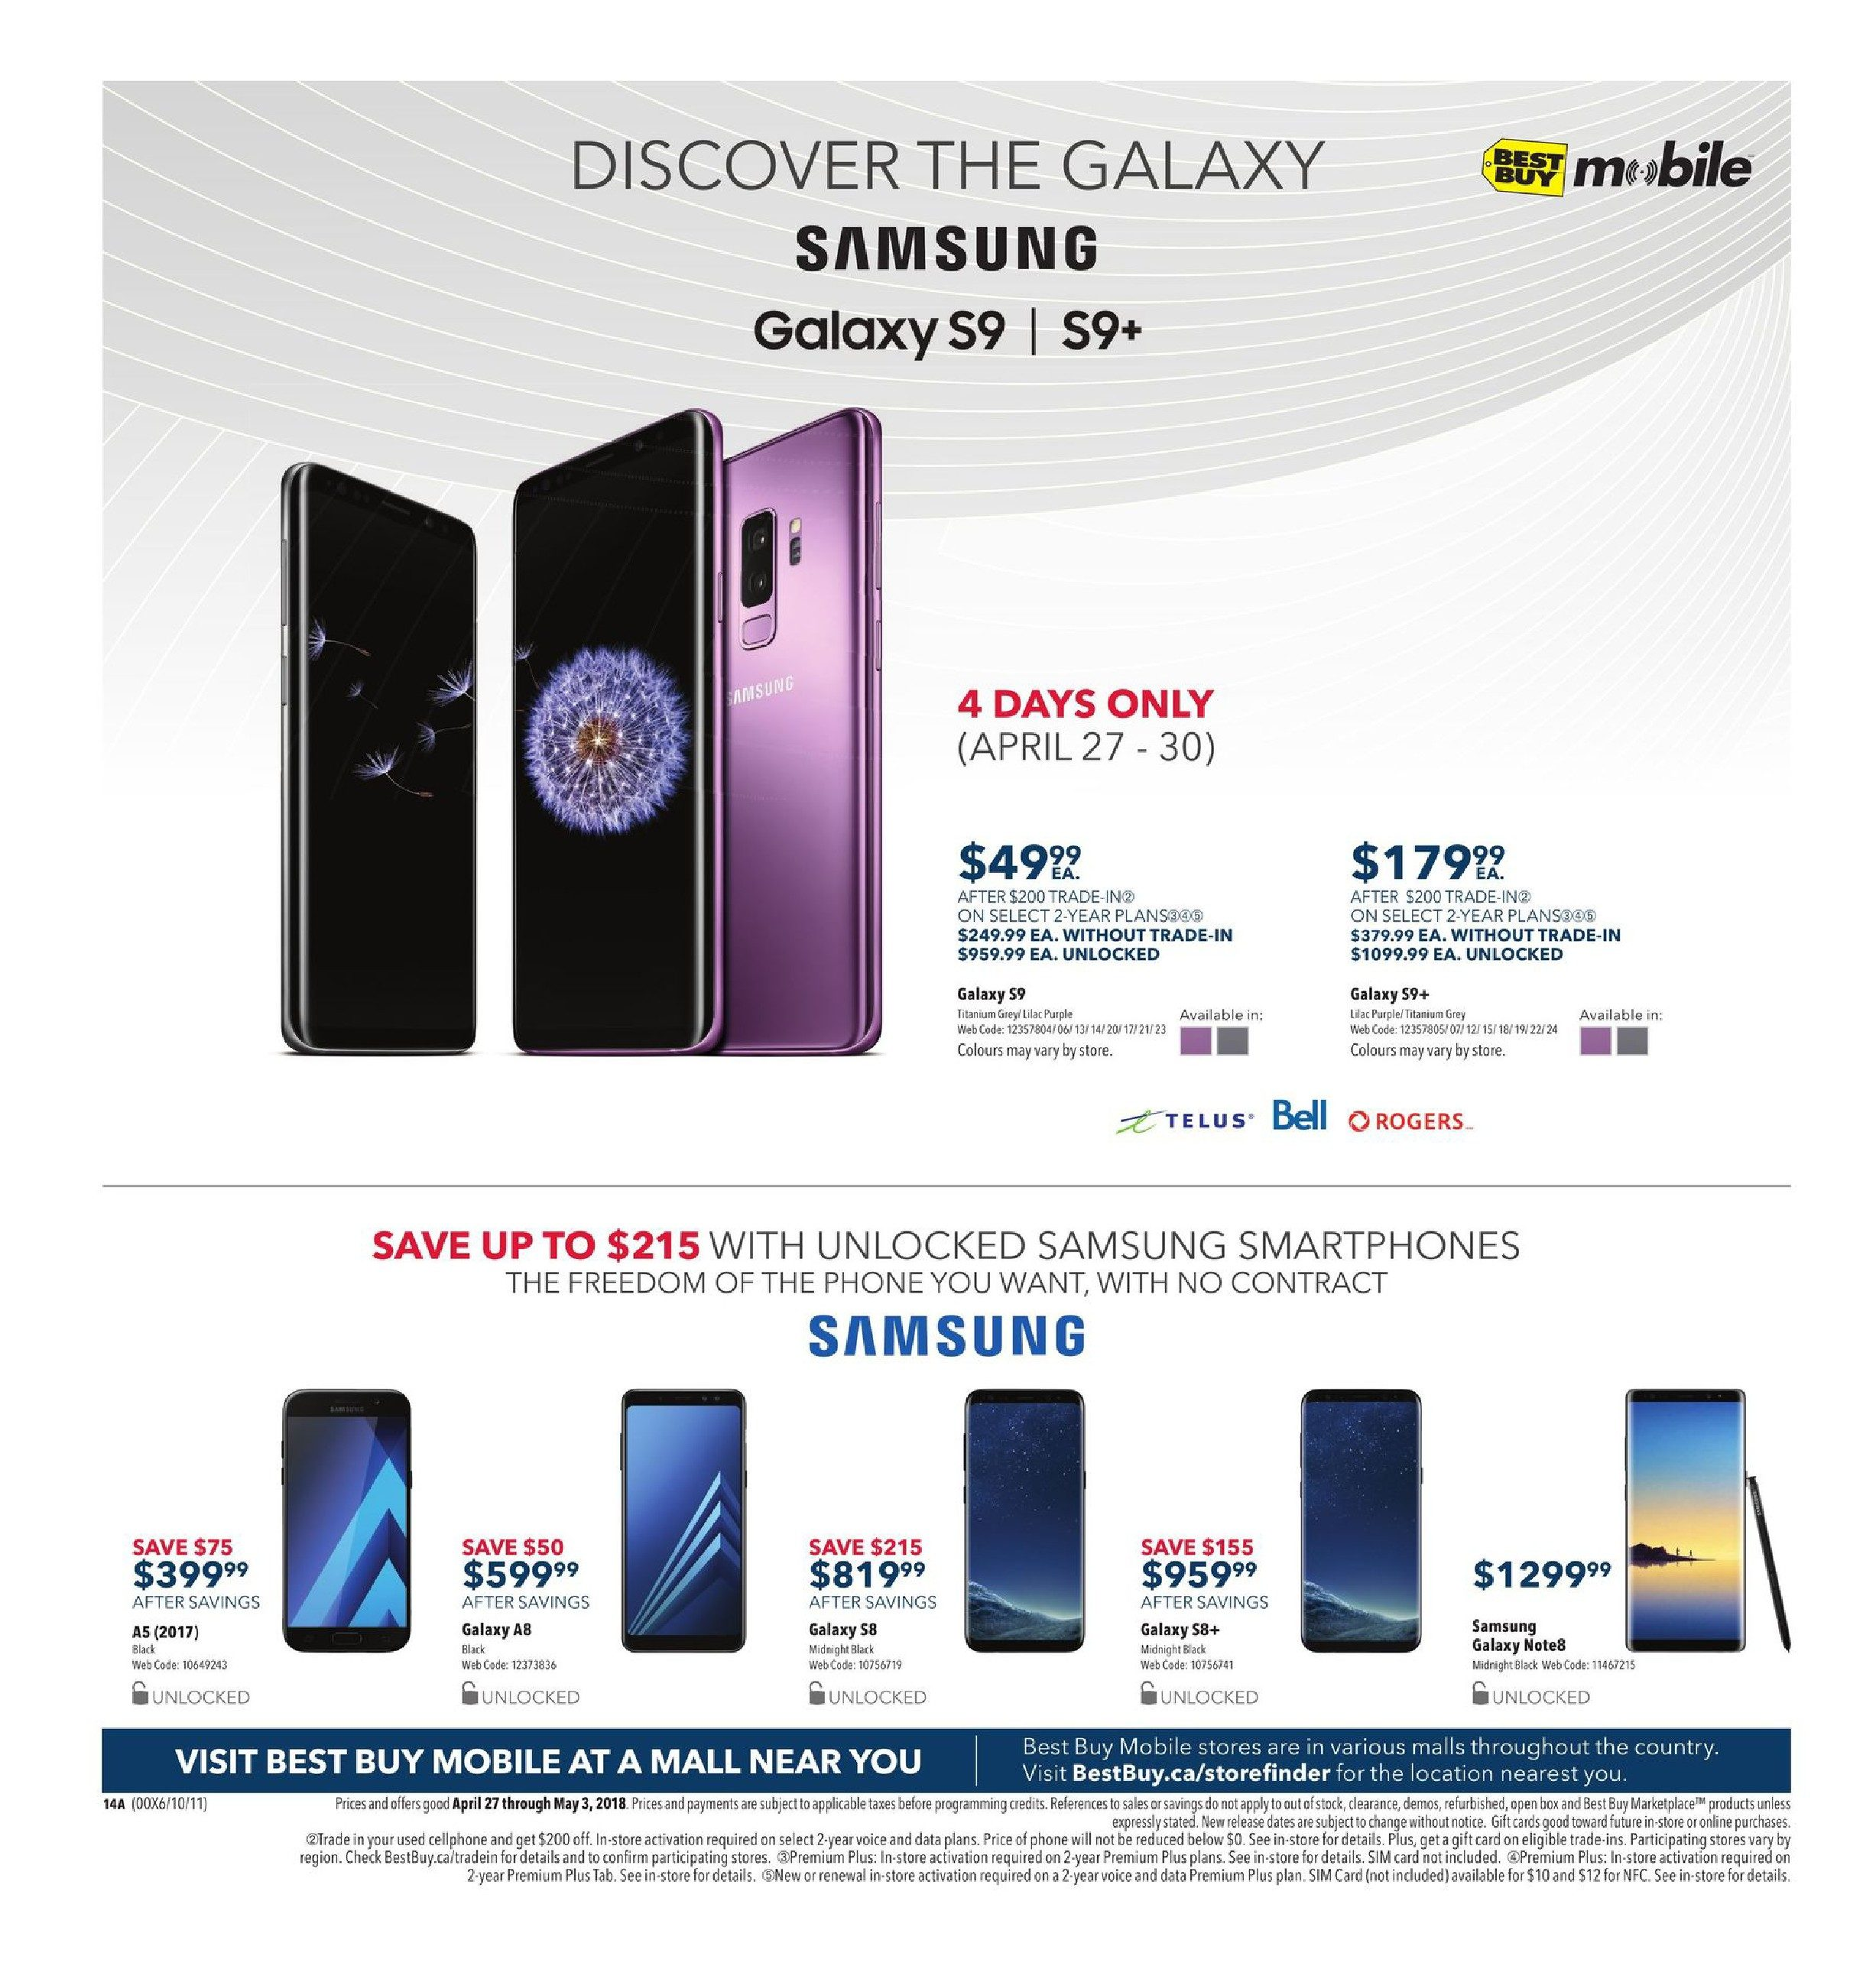 Best buy weekly flyer weekly surf amazing deals apr 27 may 3 best buy weekly flyer weekly surf amazing deals apr 27 may 3 redflagdeals fandeluxe Image collections